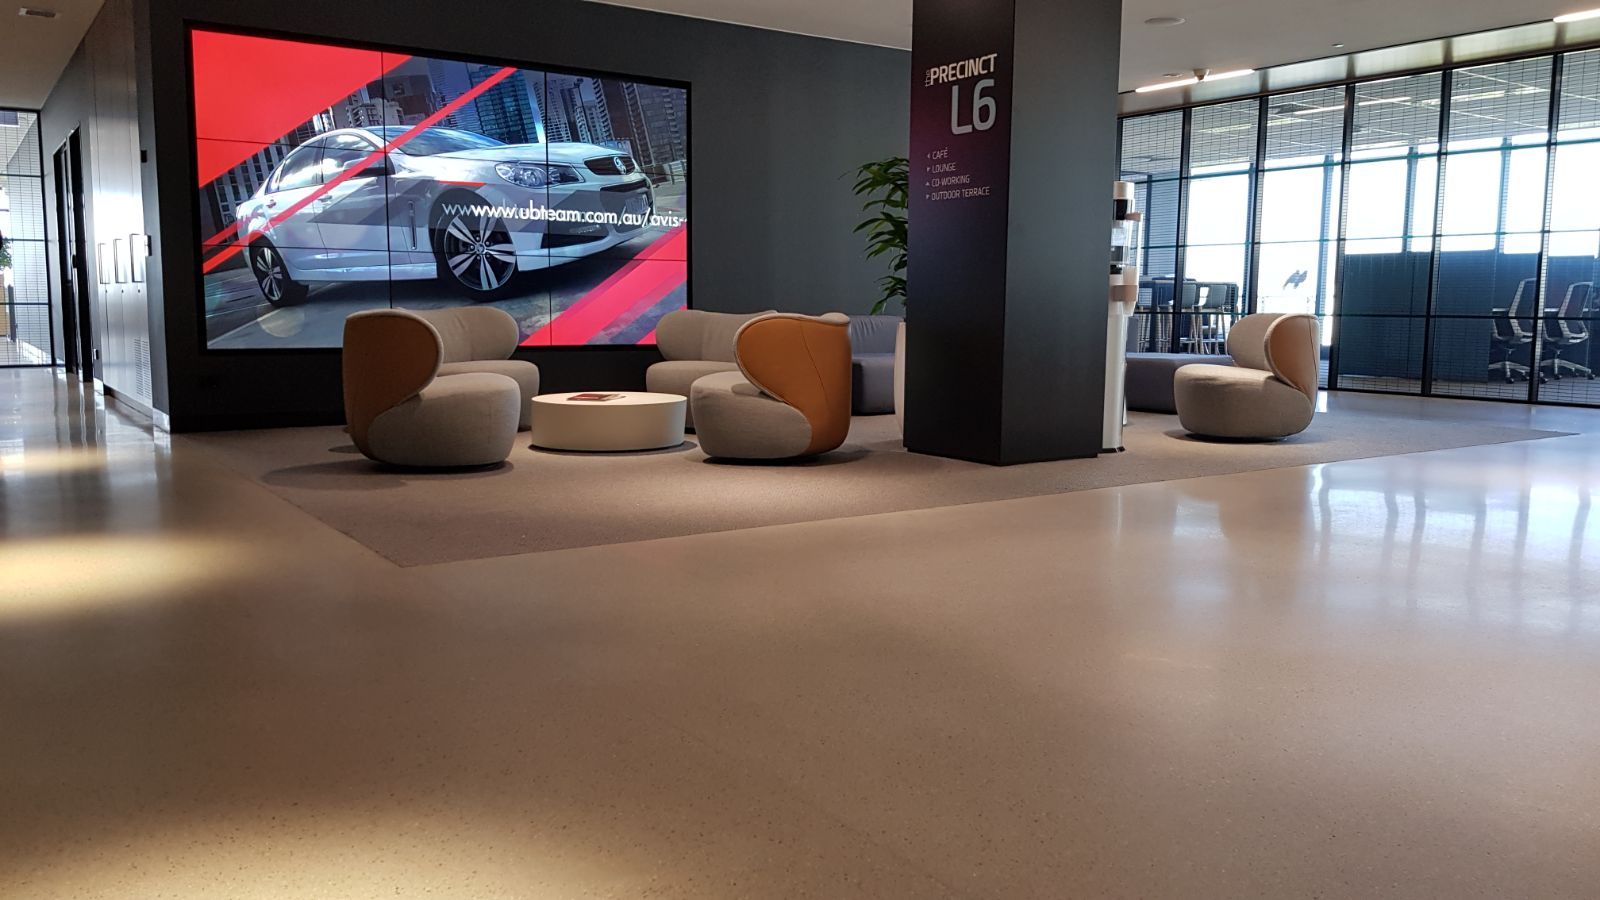 polished concrete floor in foyer of a commercial building